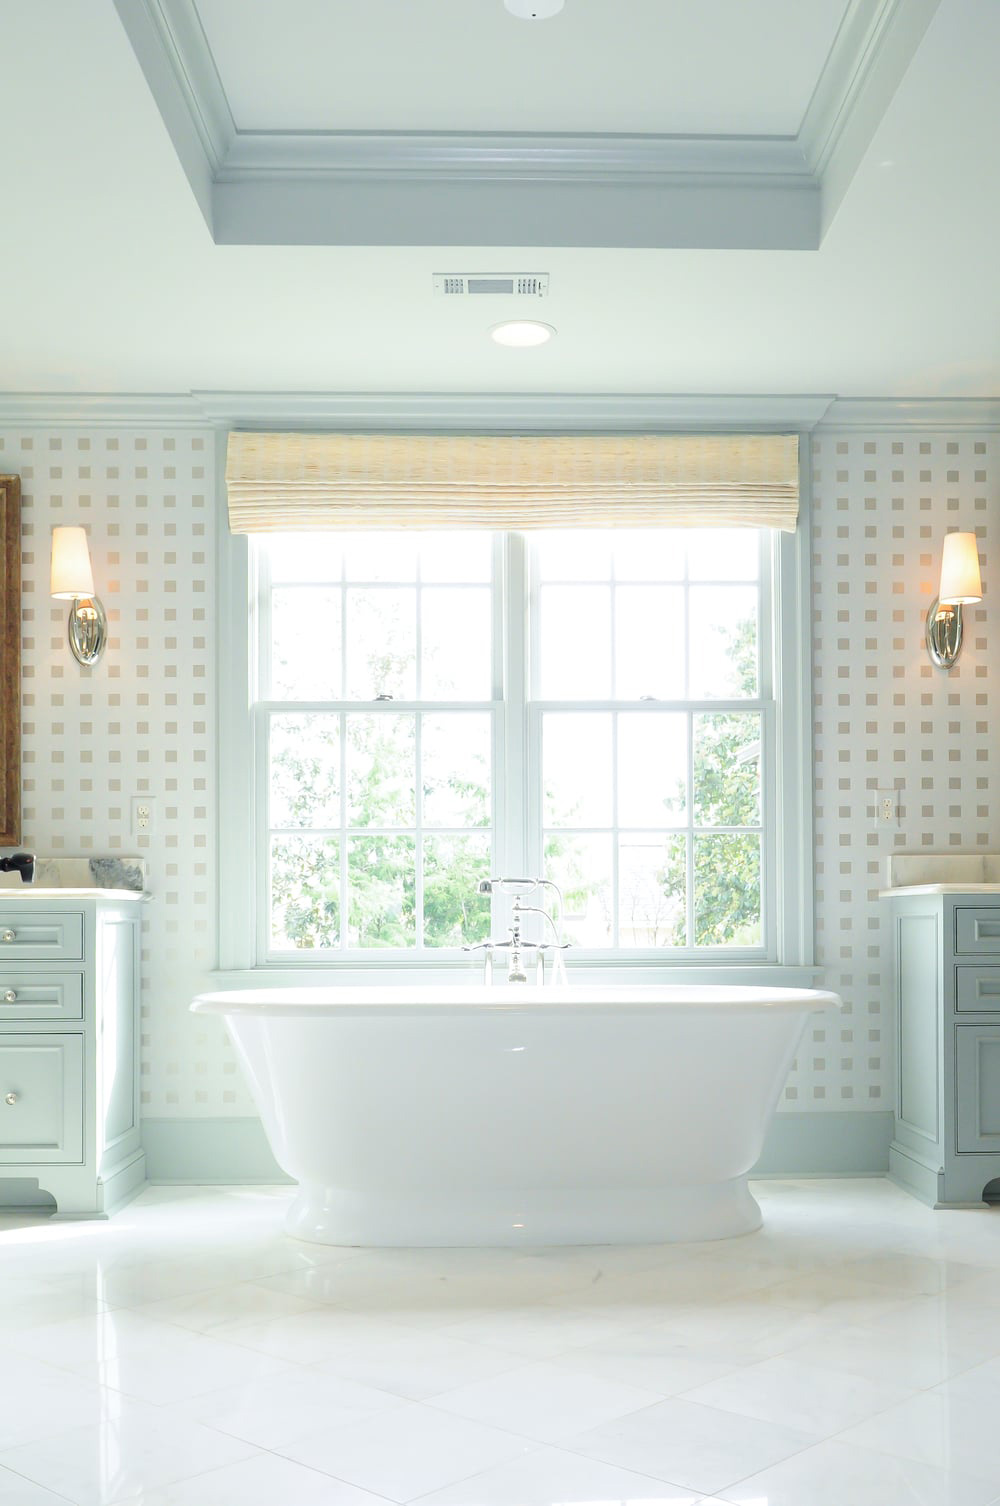 A freestanding tub with Rohl tub filler